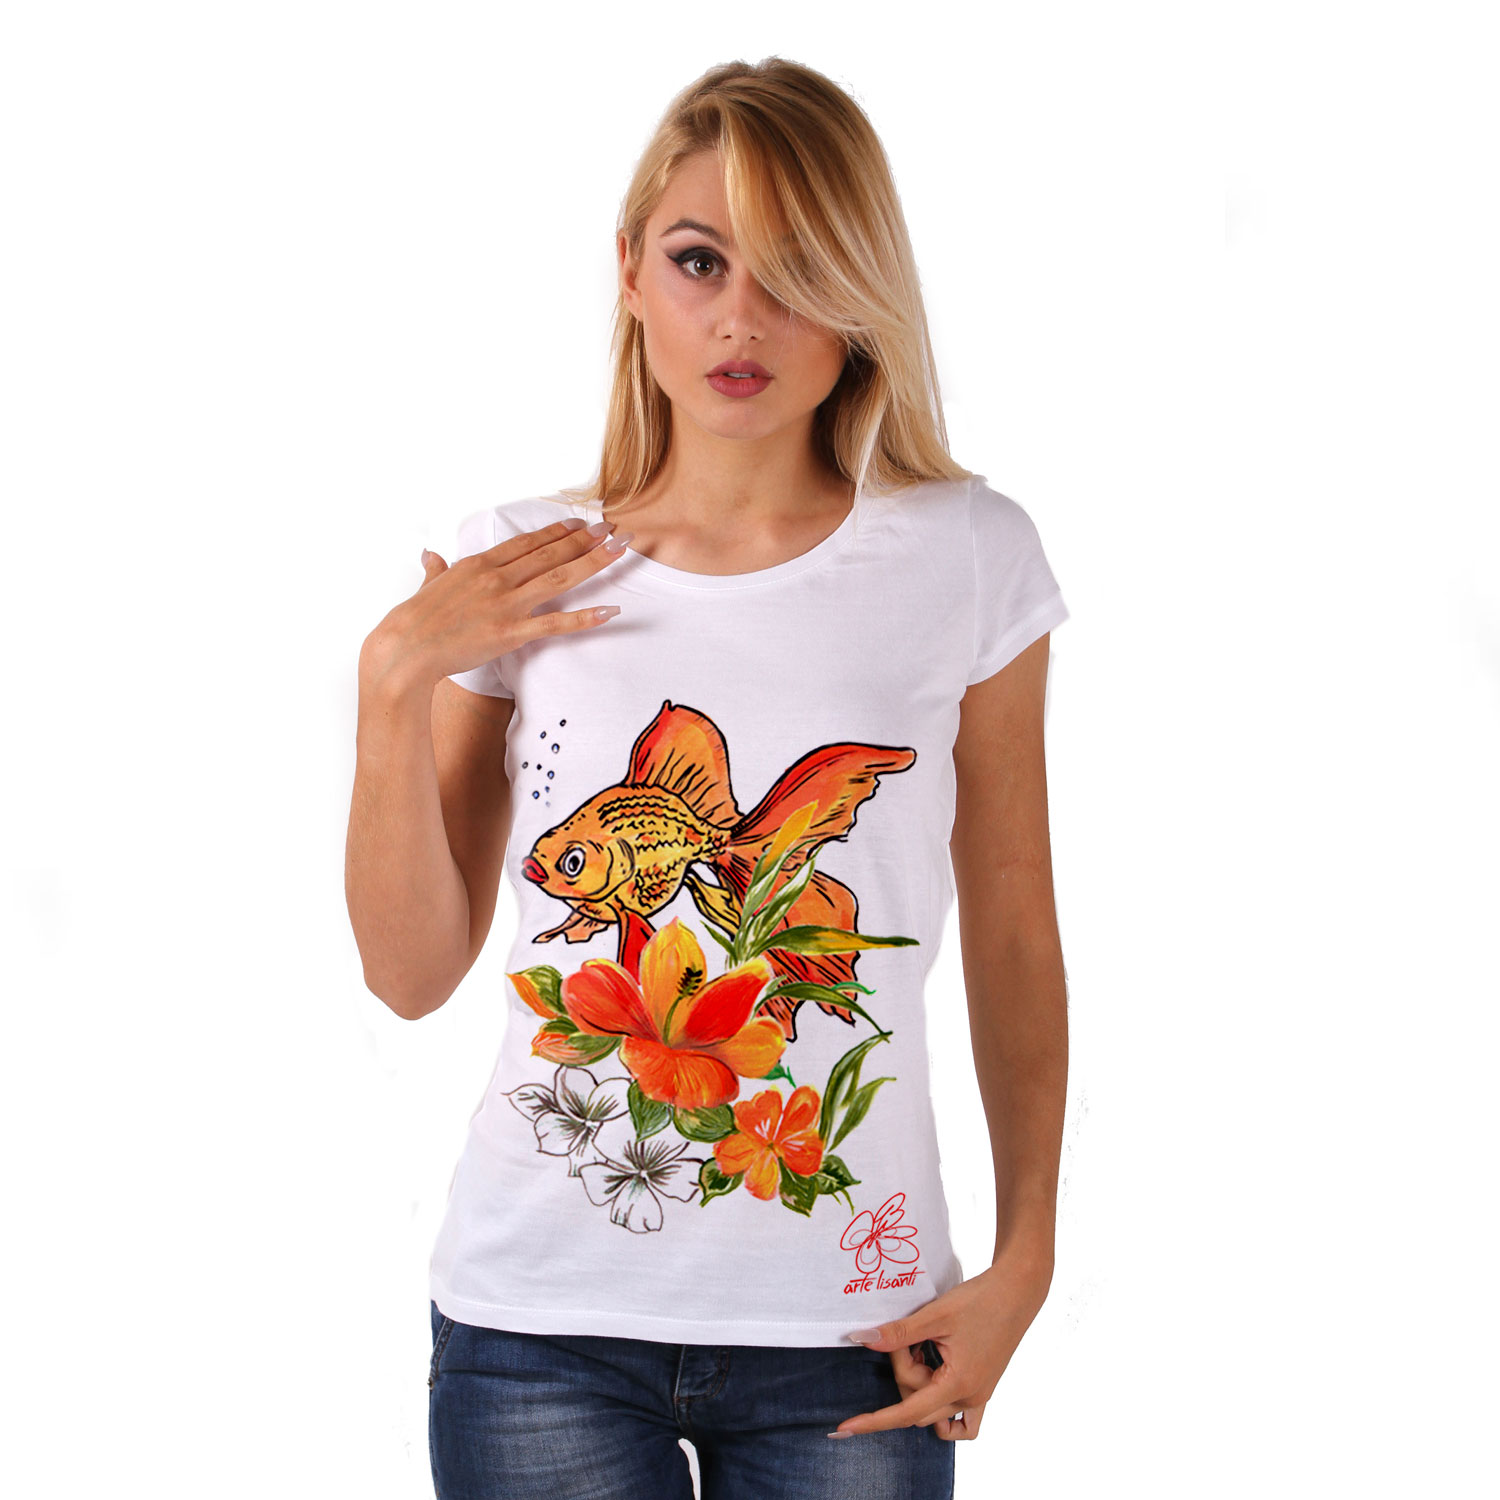 Hand-painted Jersey - Fish and flowers